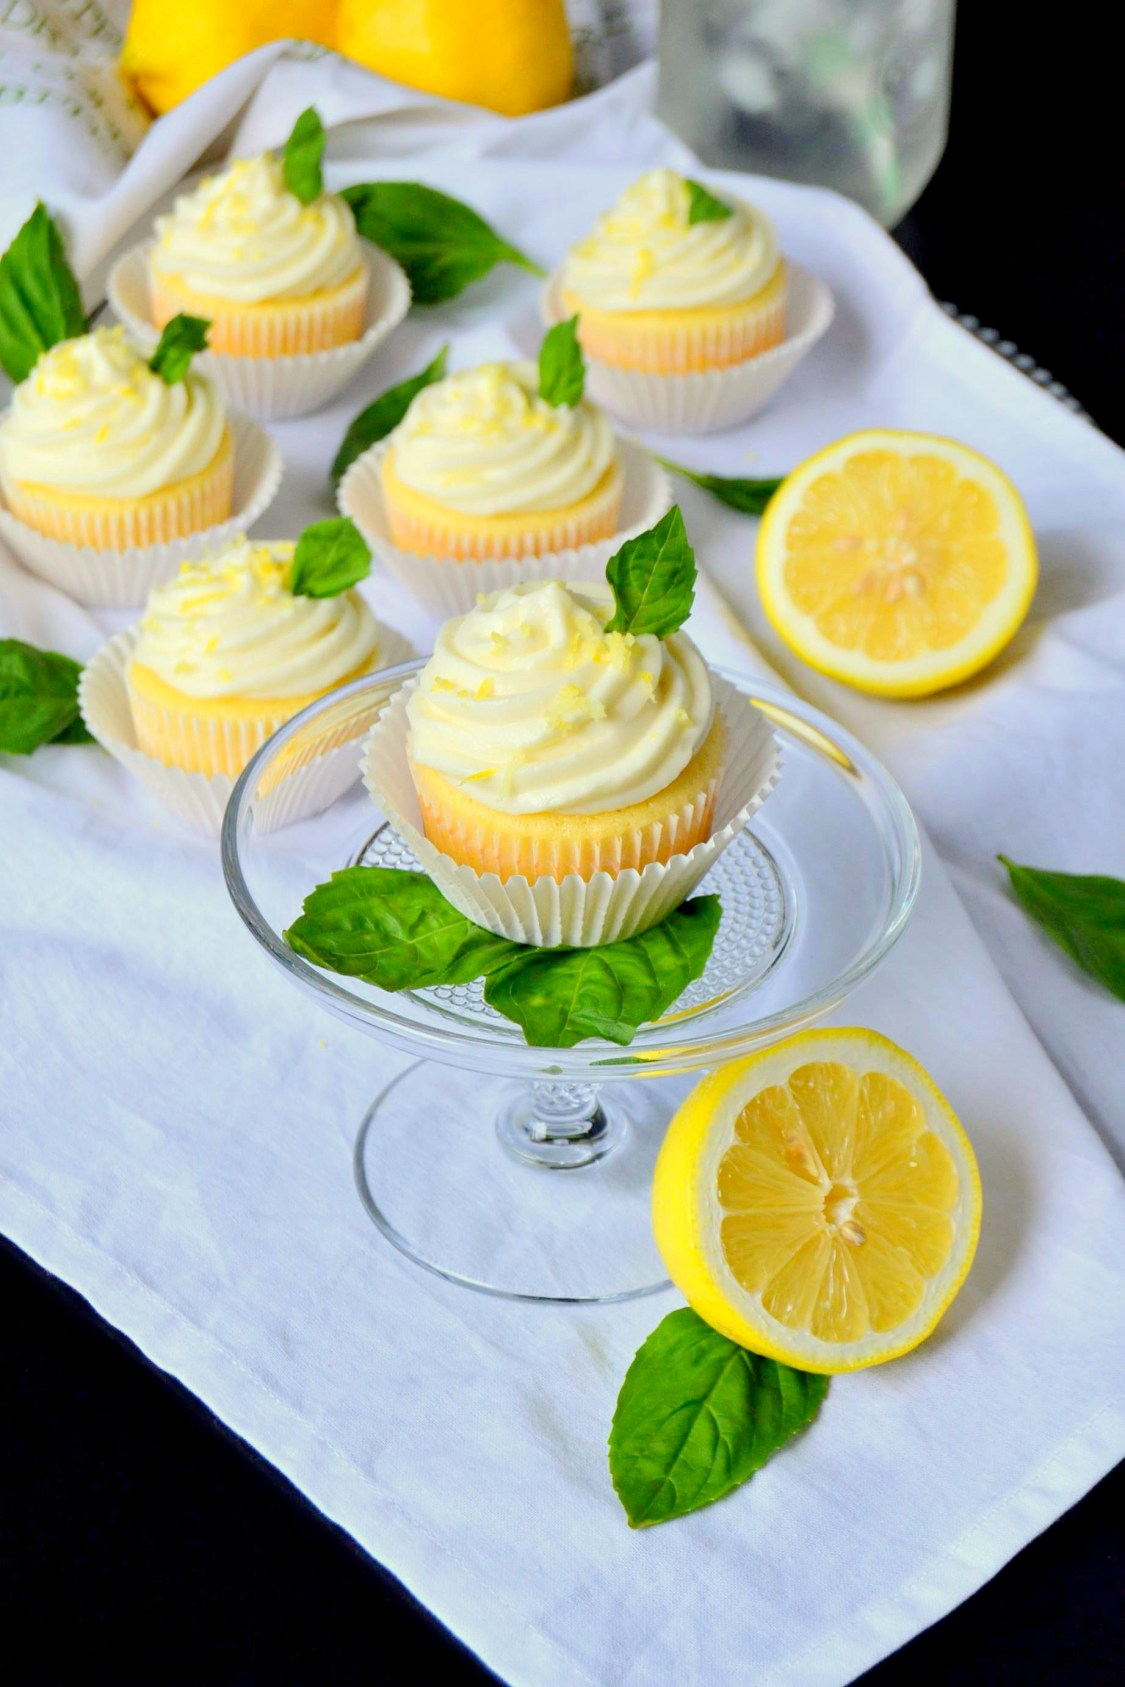 Tattooed Martha - Lemon Cupcakes with Basil Whipped Cream Frosting (6)